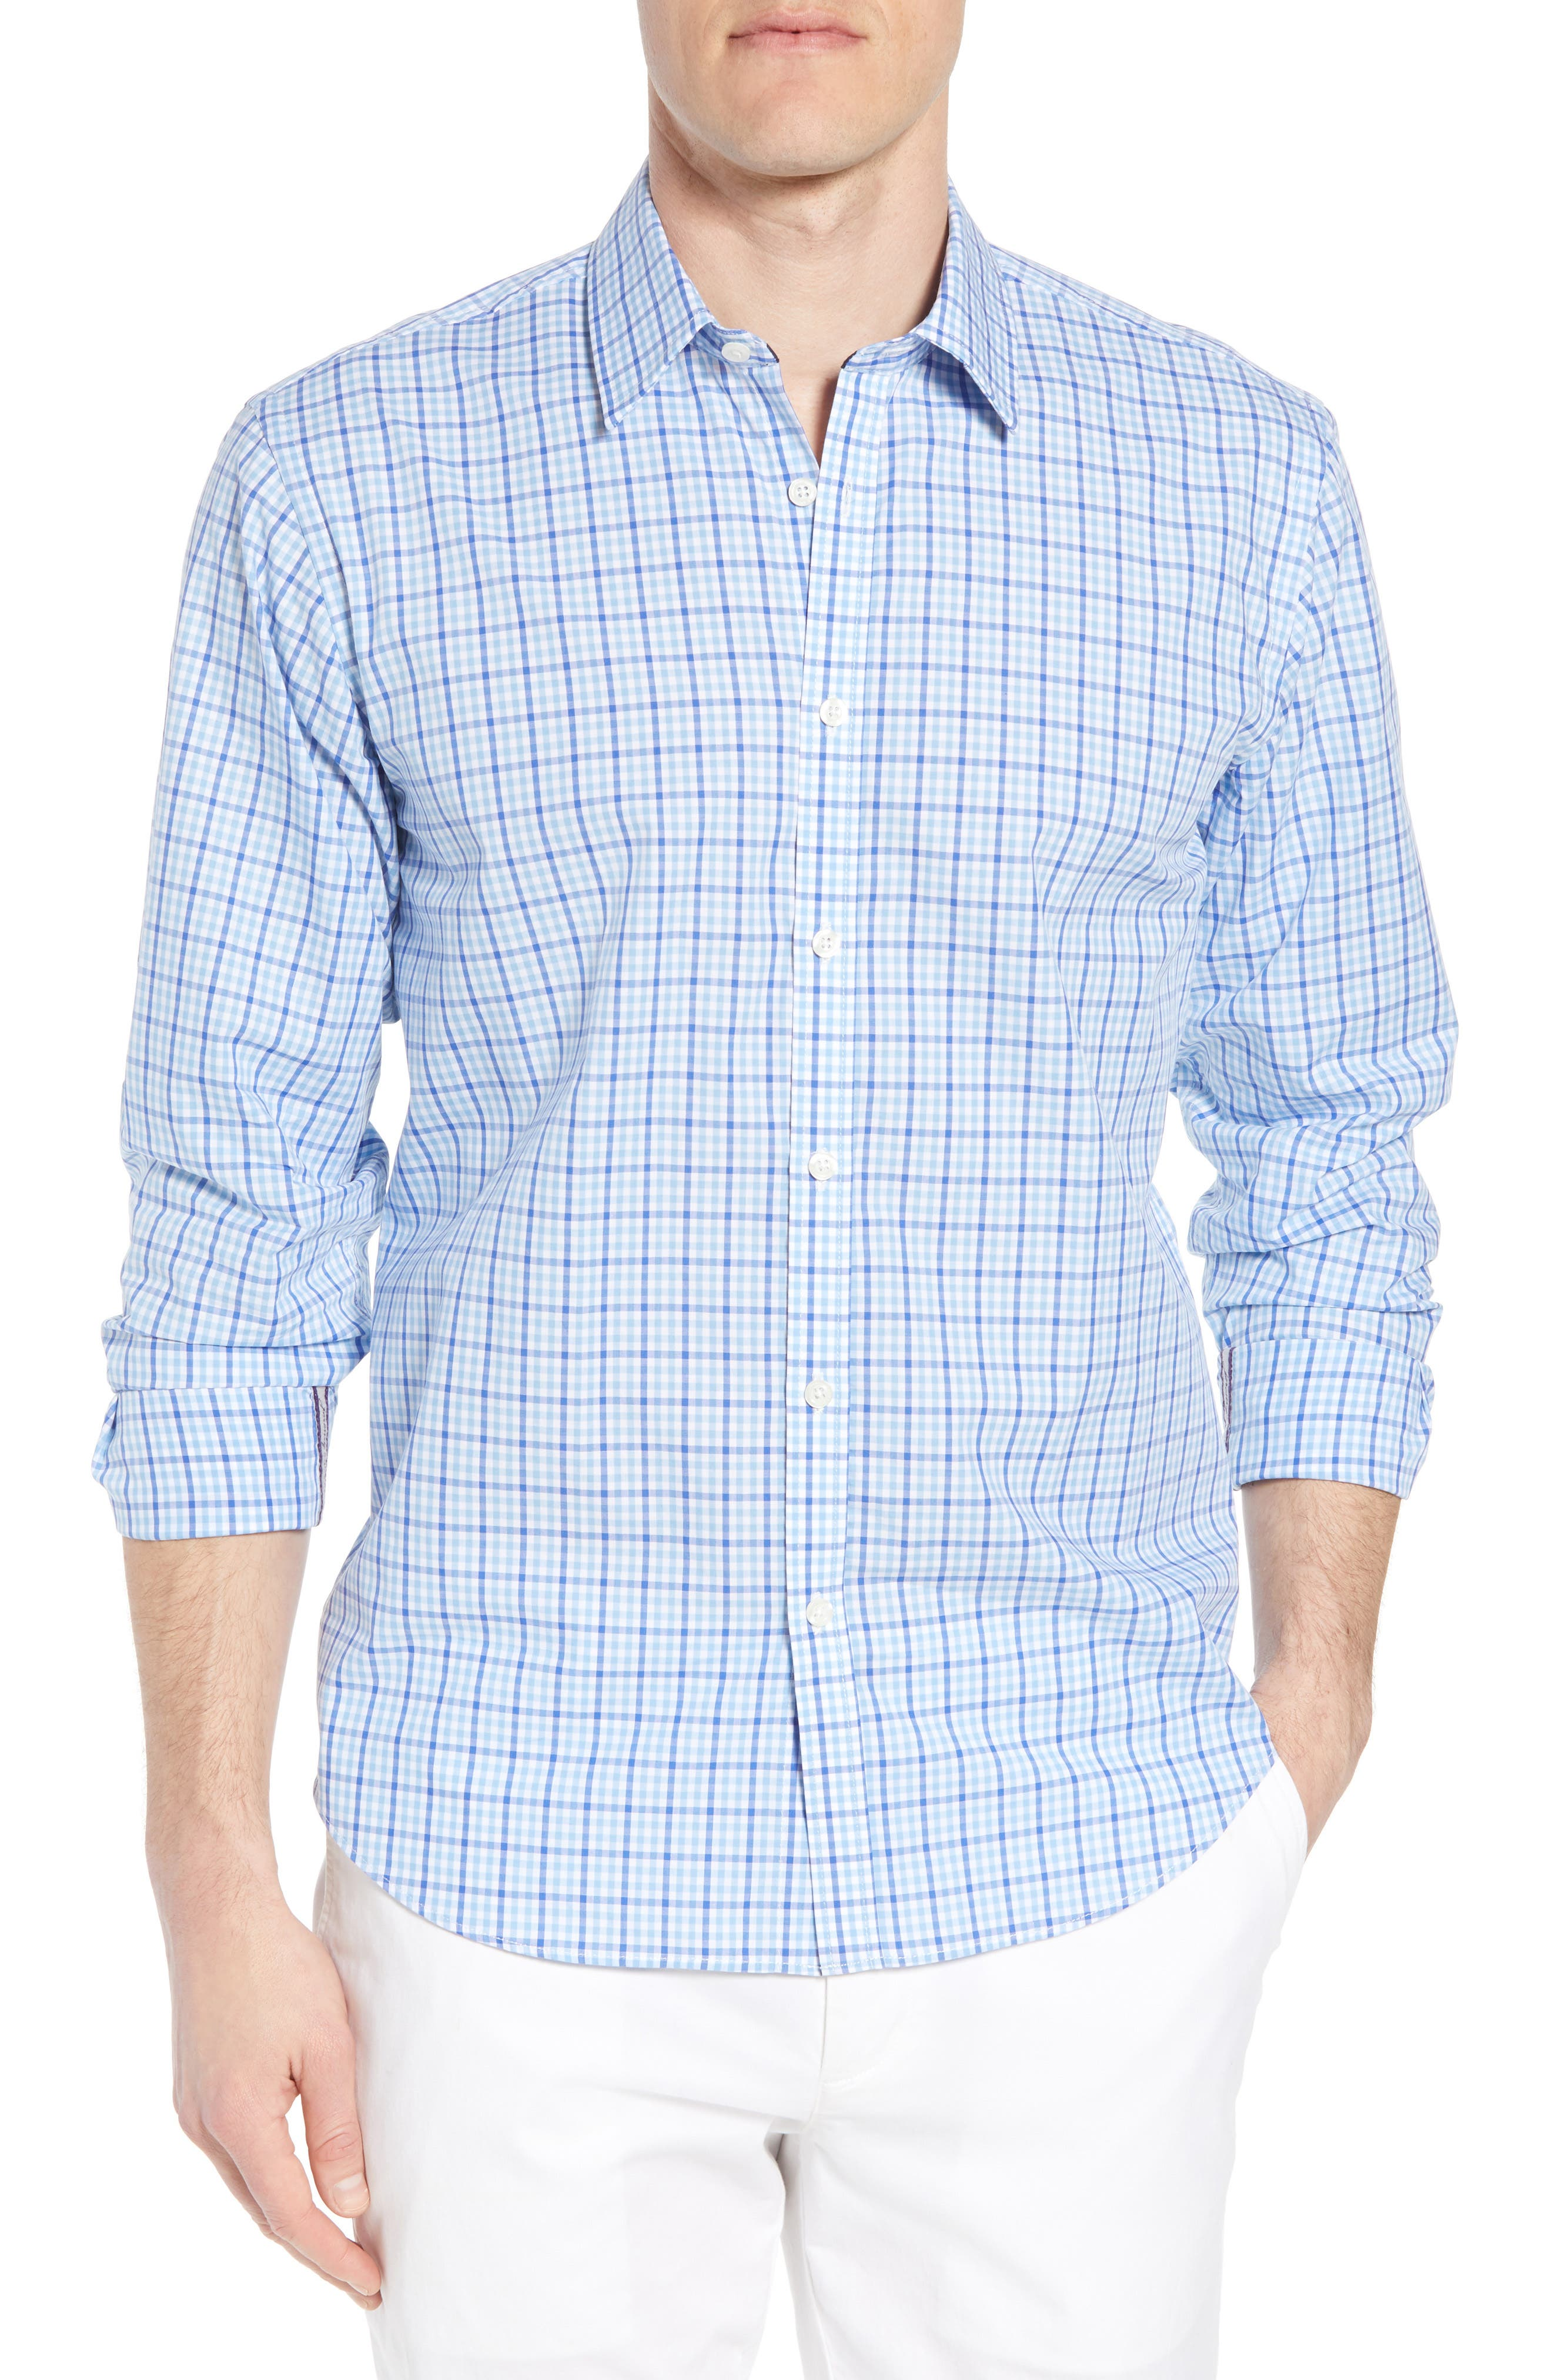 Jeremy Argyle Slim Fit Grid Sport Shirt